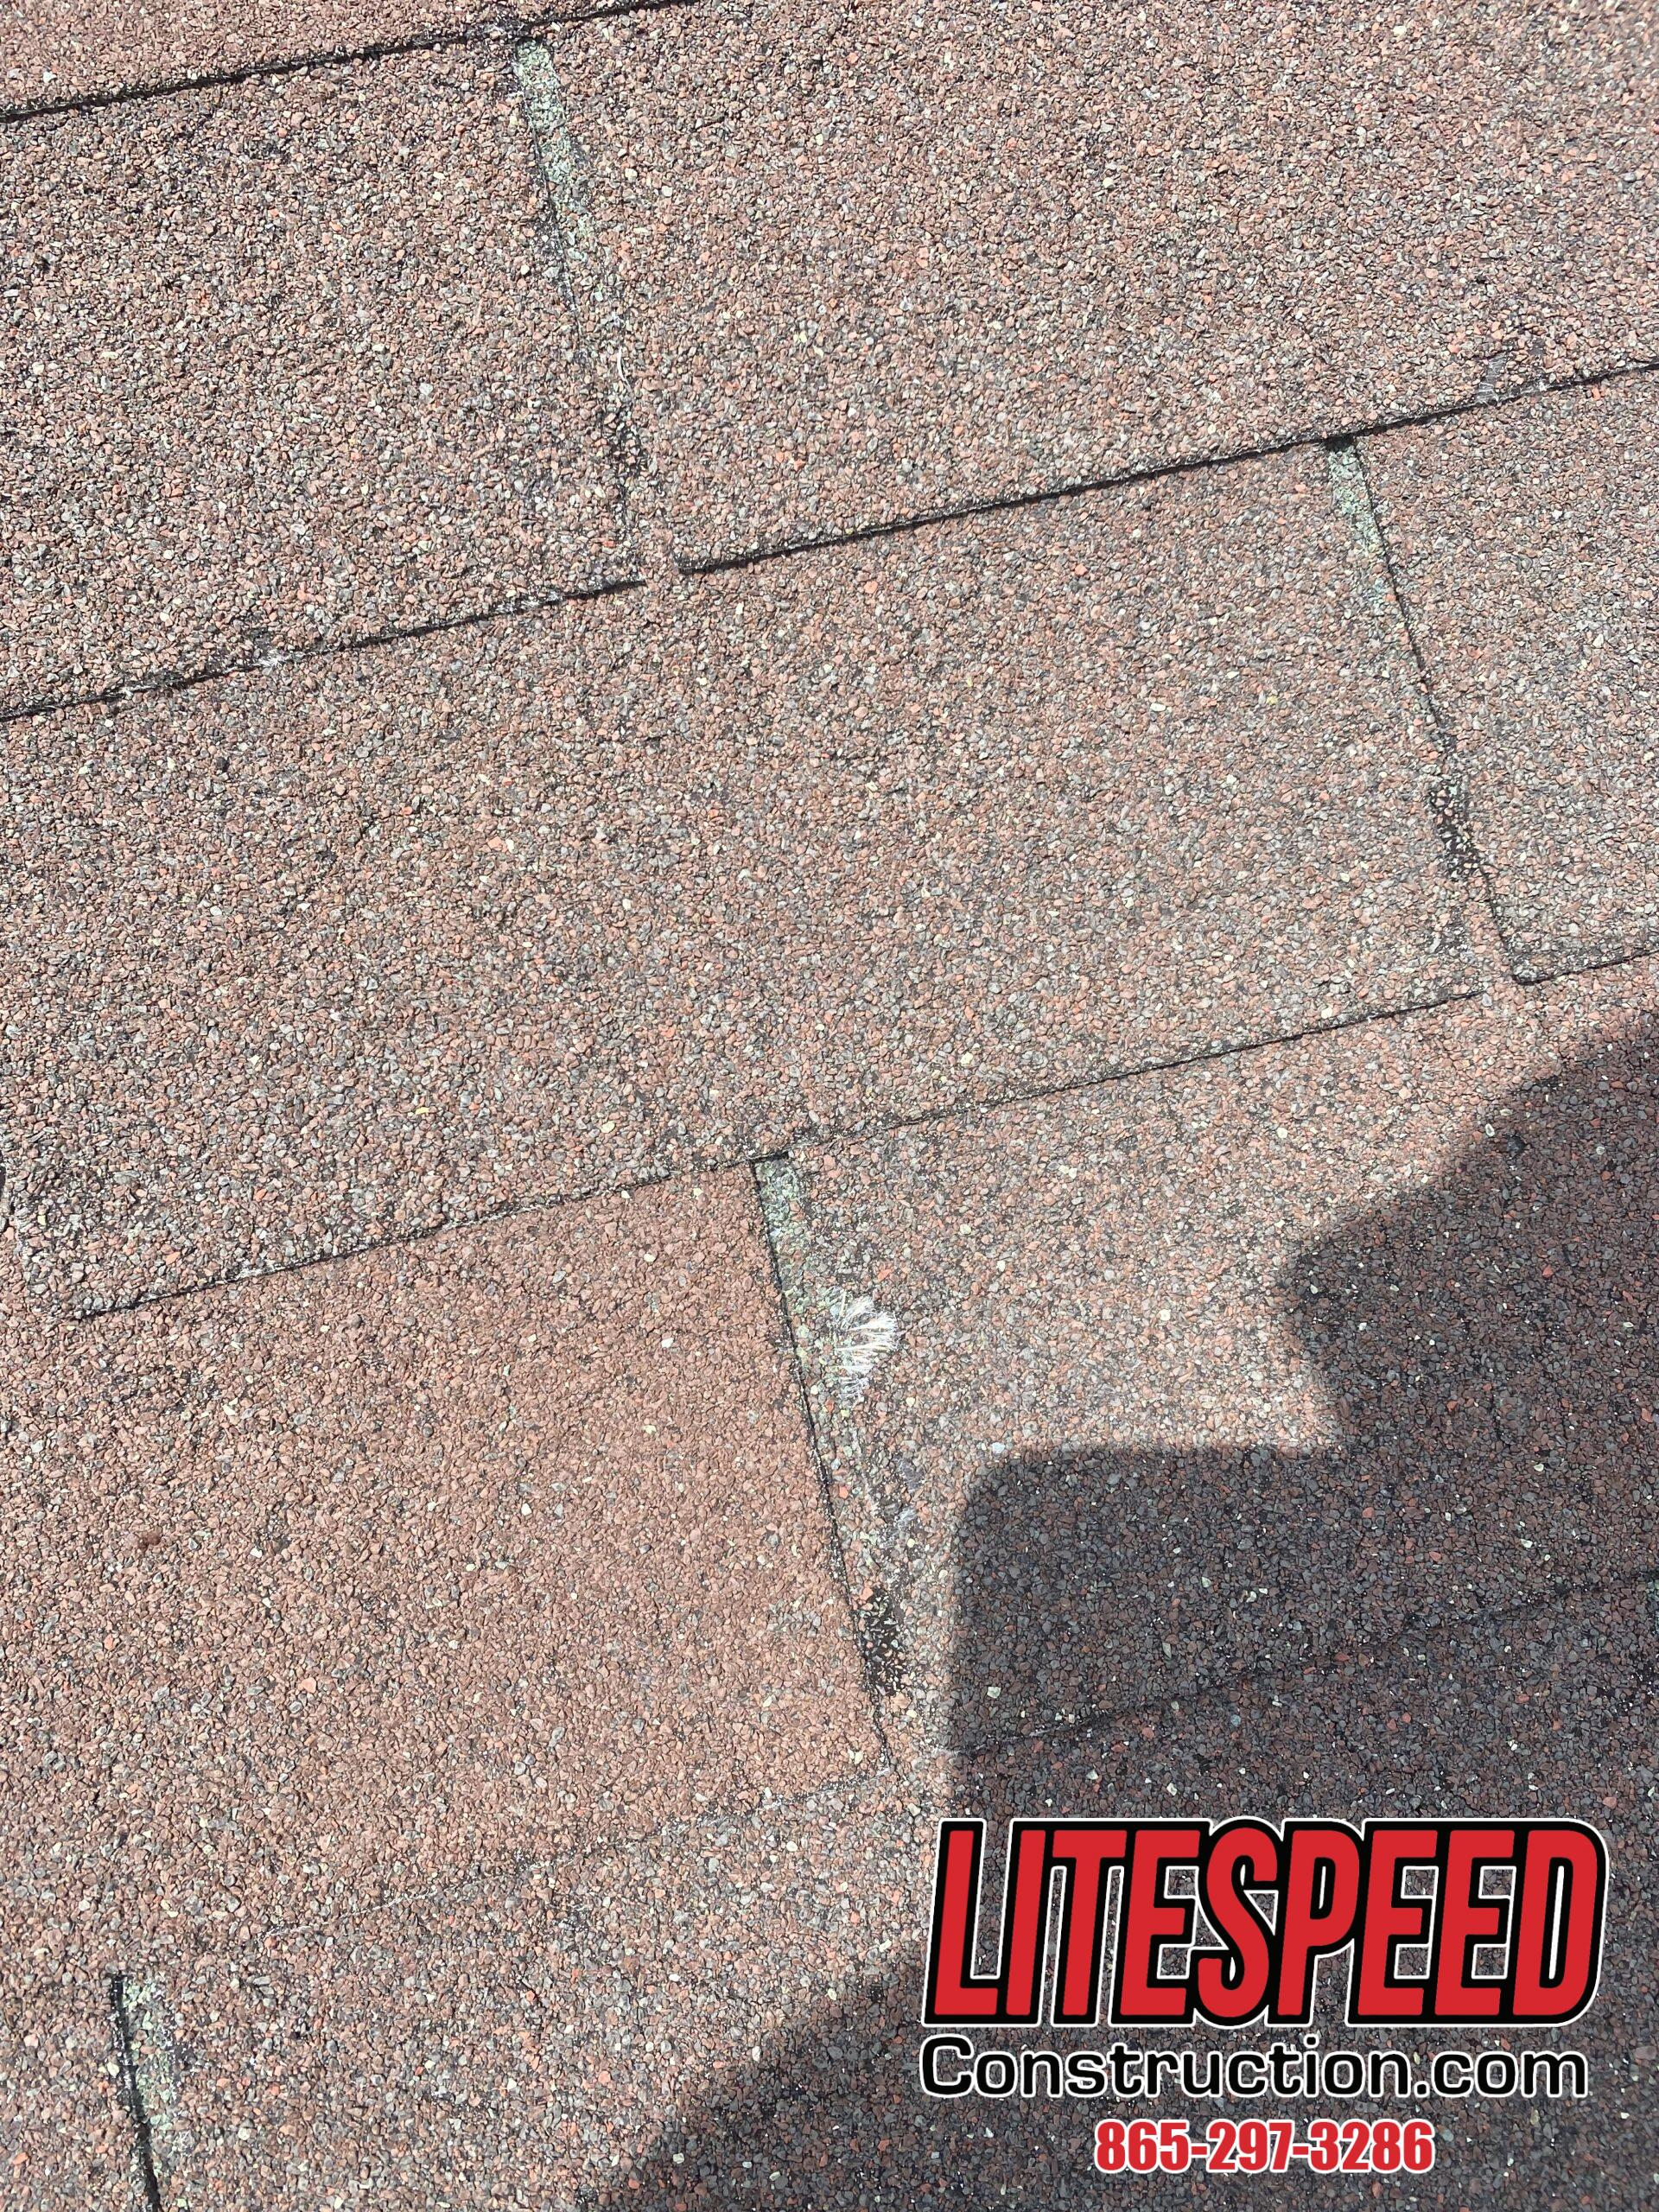 This is a picture of a shingle with a missing piece on the left side.